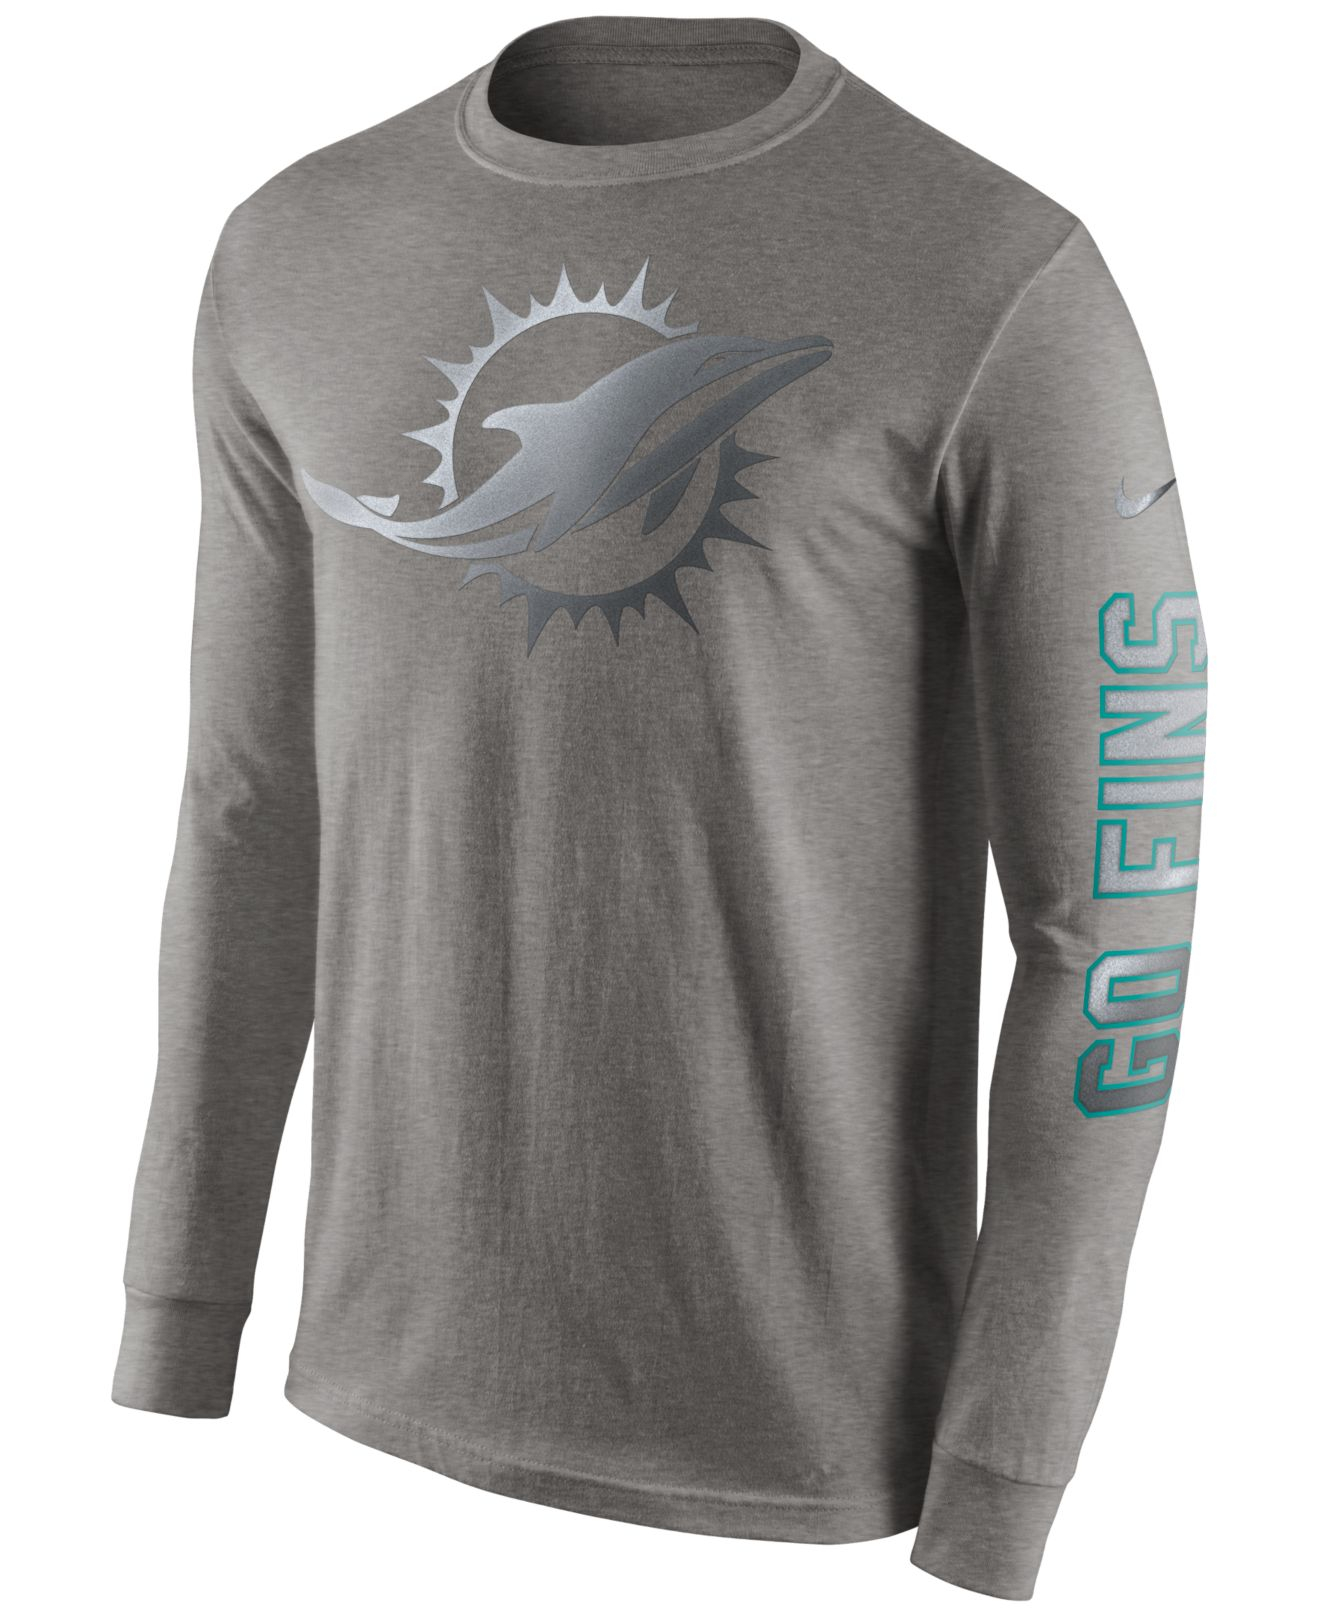 e465db7a Nike Gray Men's Long-sleeve Miami Dolphins Reflective T-shirt for men